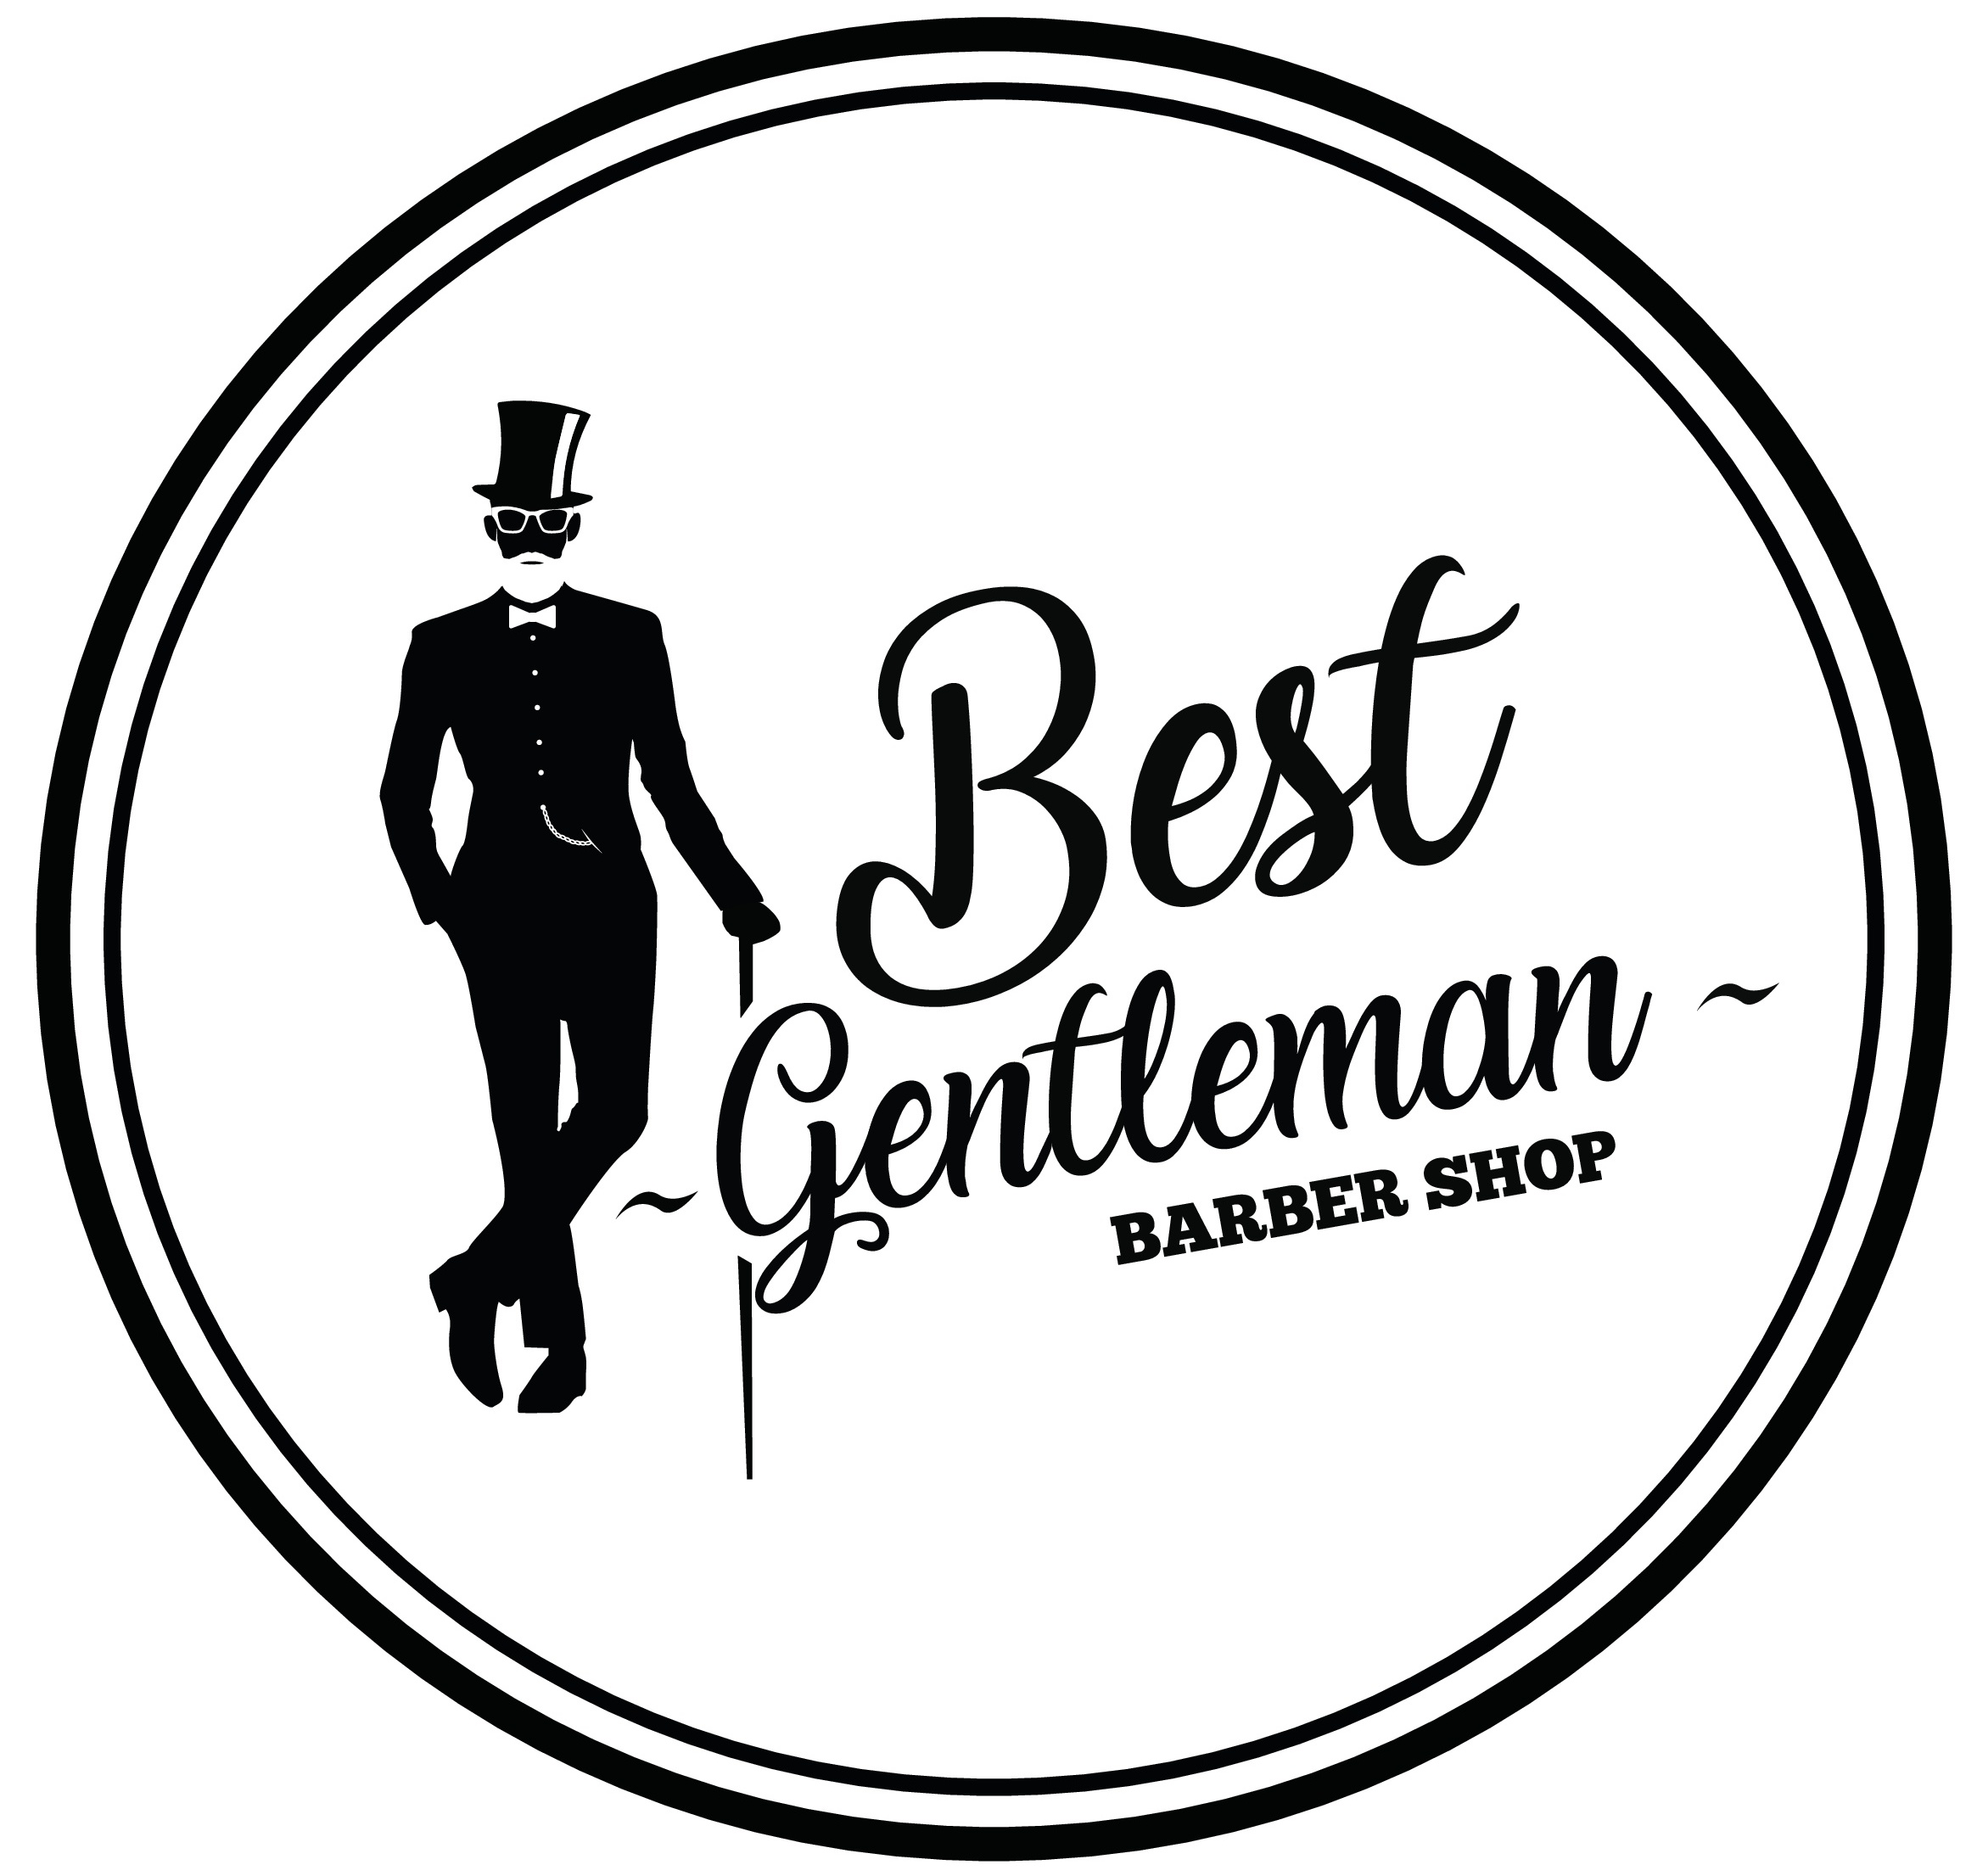 Best Gentleman Barbershop